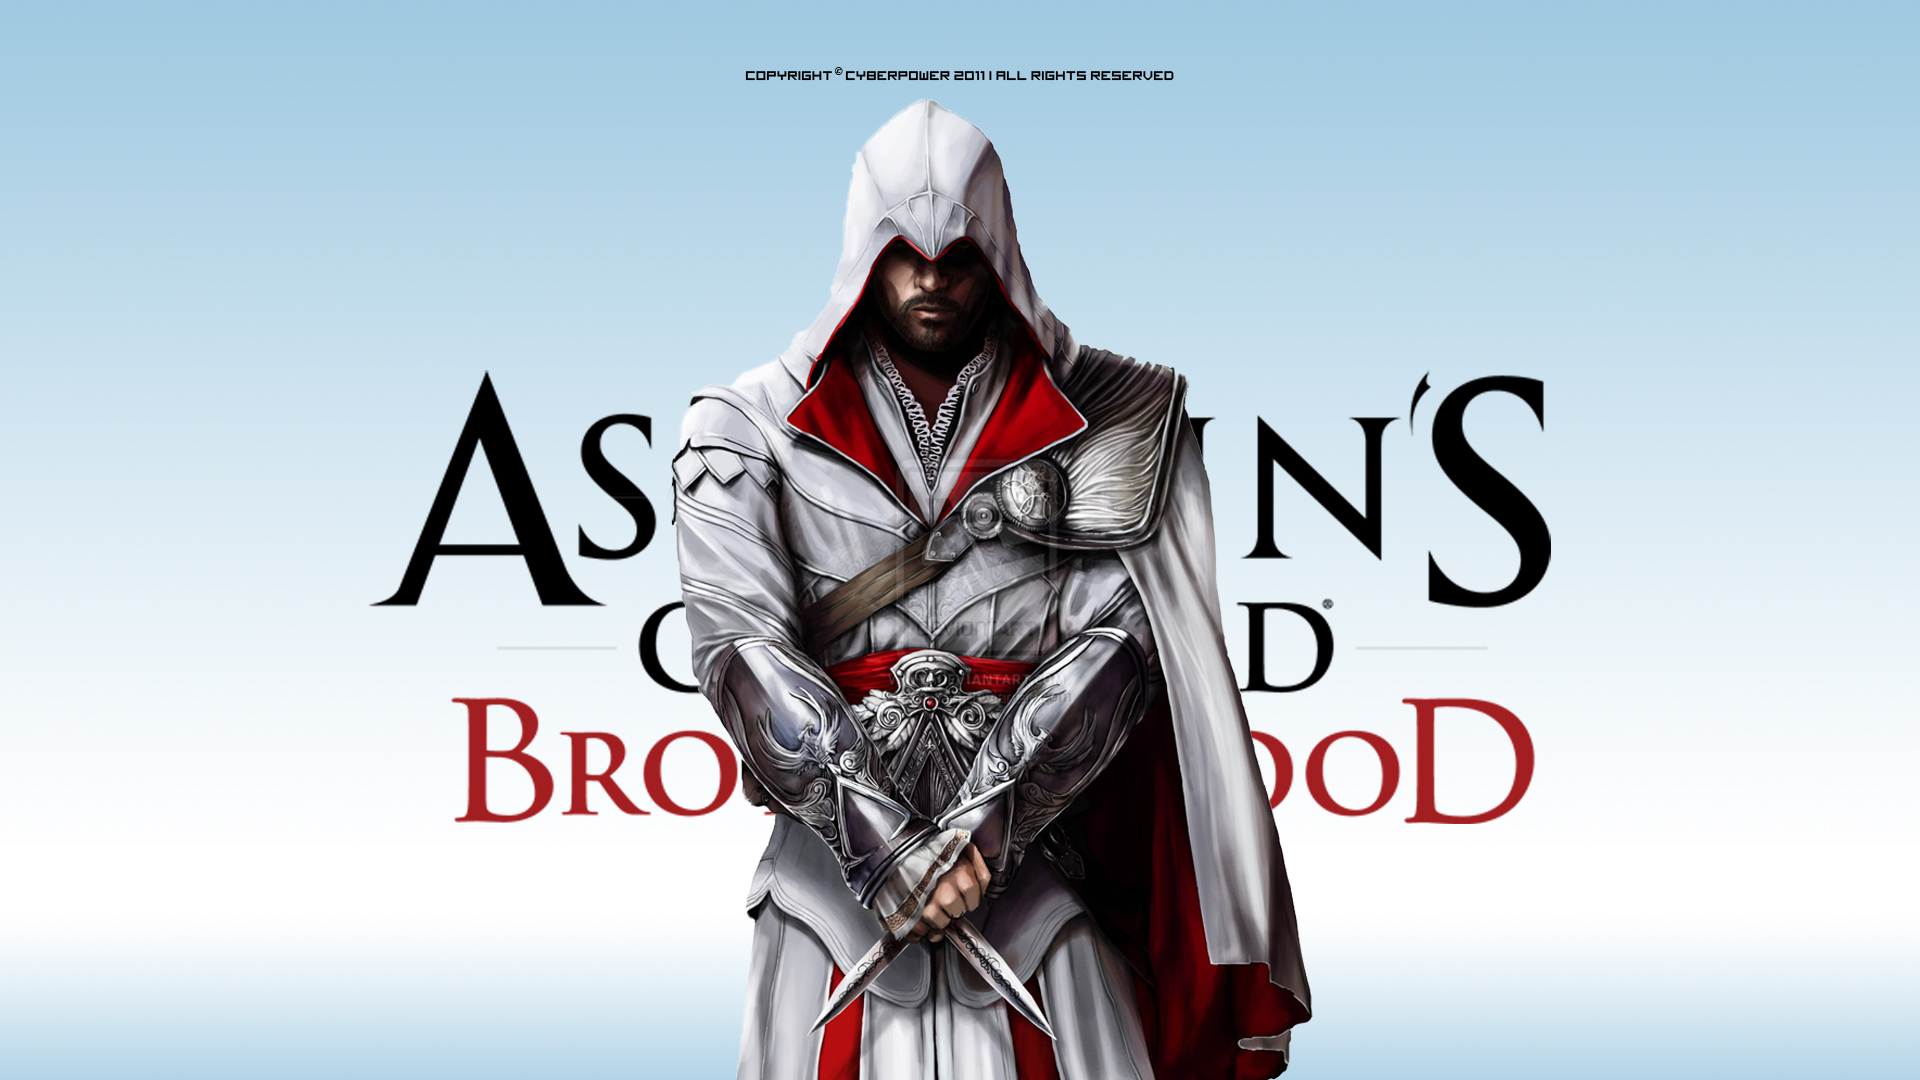 Video Game - Assassin's Creed: Brotherhood  Wallpaper